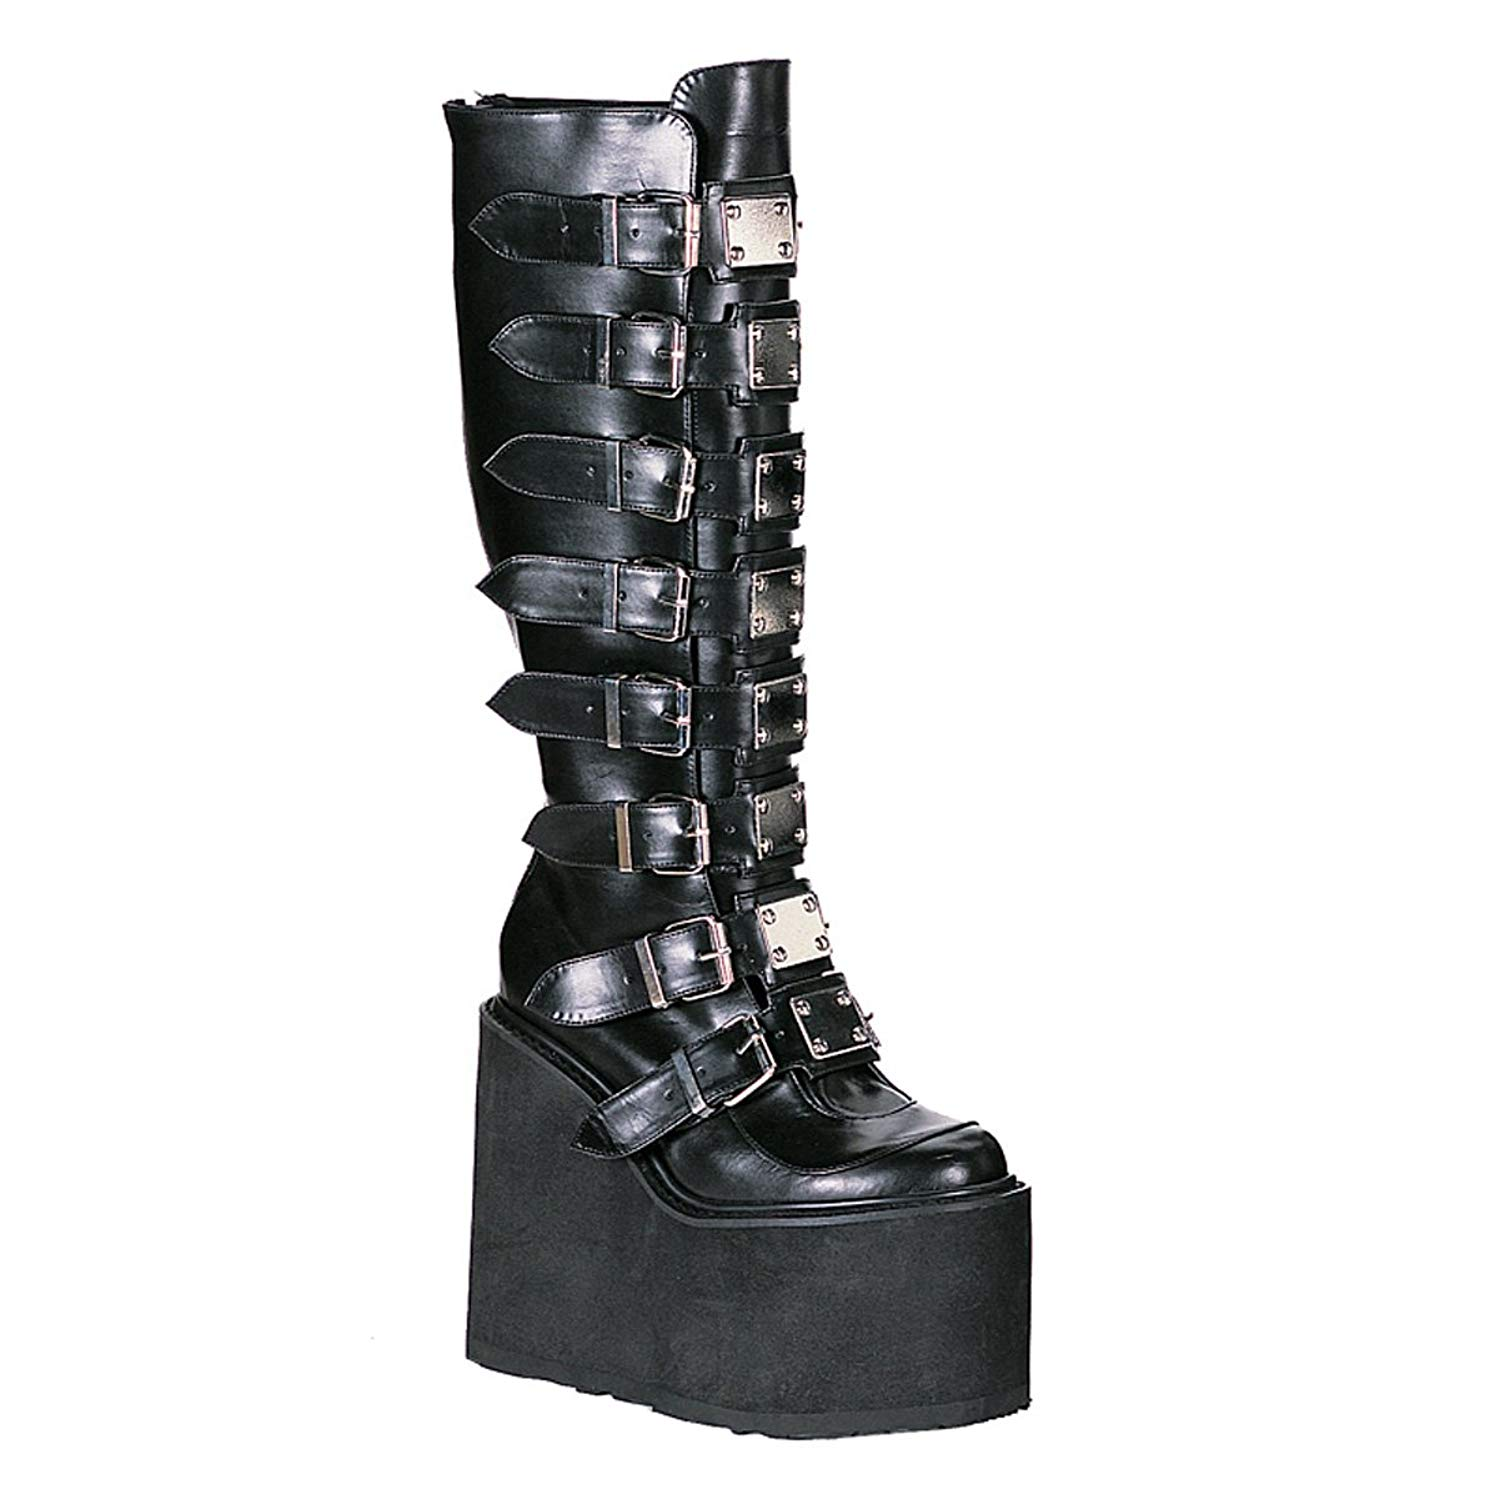 bbeedbdf1e6f Get Quotations · Summitfashions 5 1/2 Inch Platform Boots Trendy Knee High  Boots Gothic Boots Black Boots